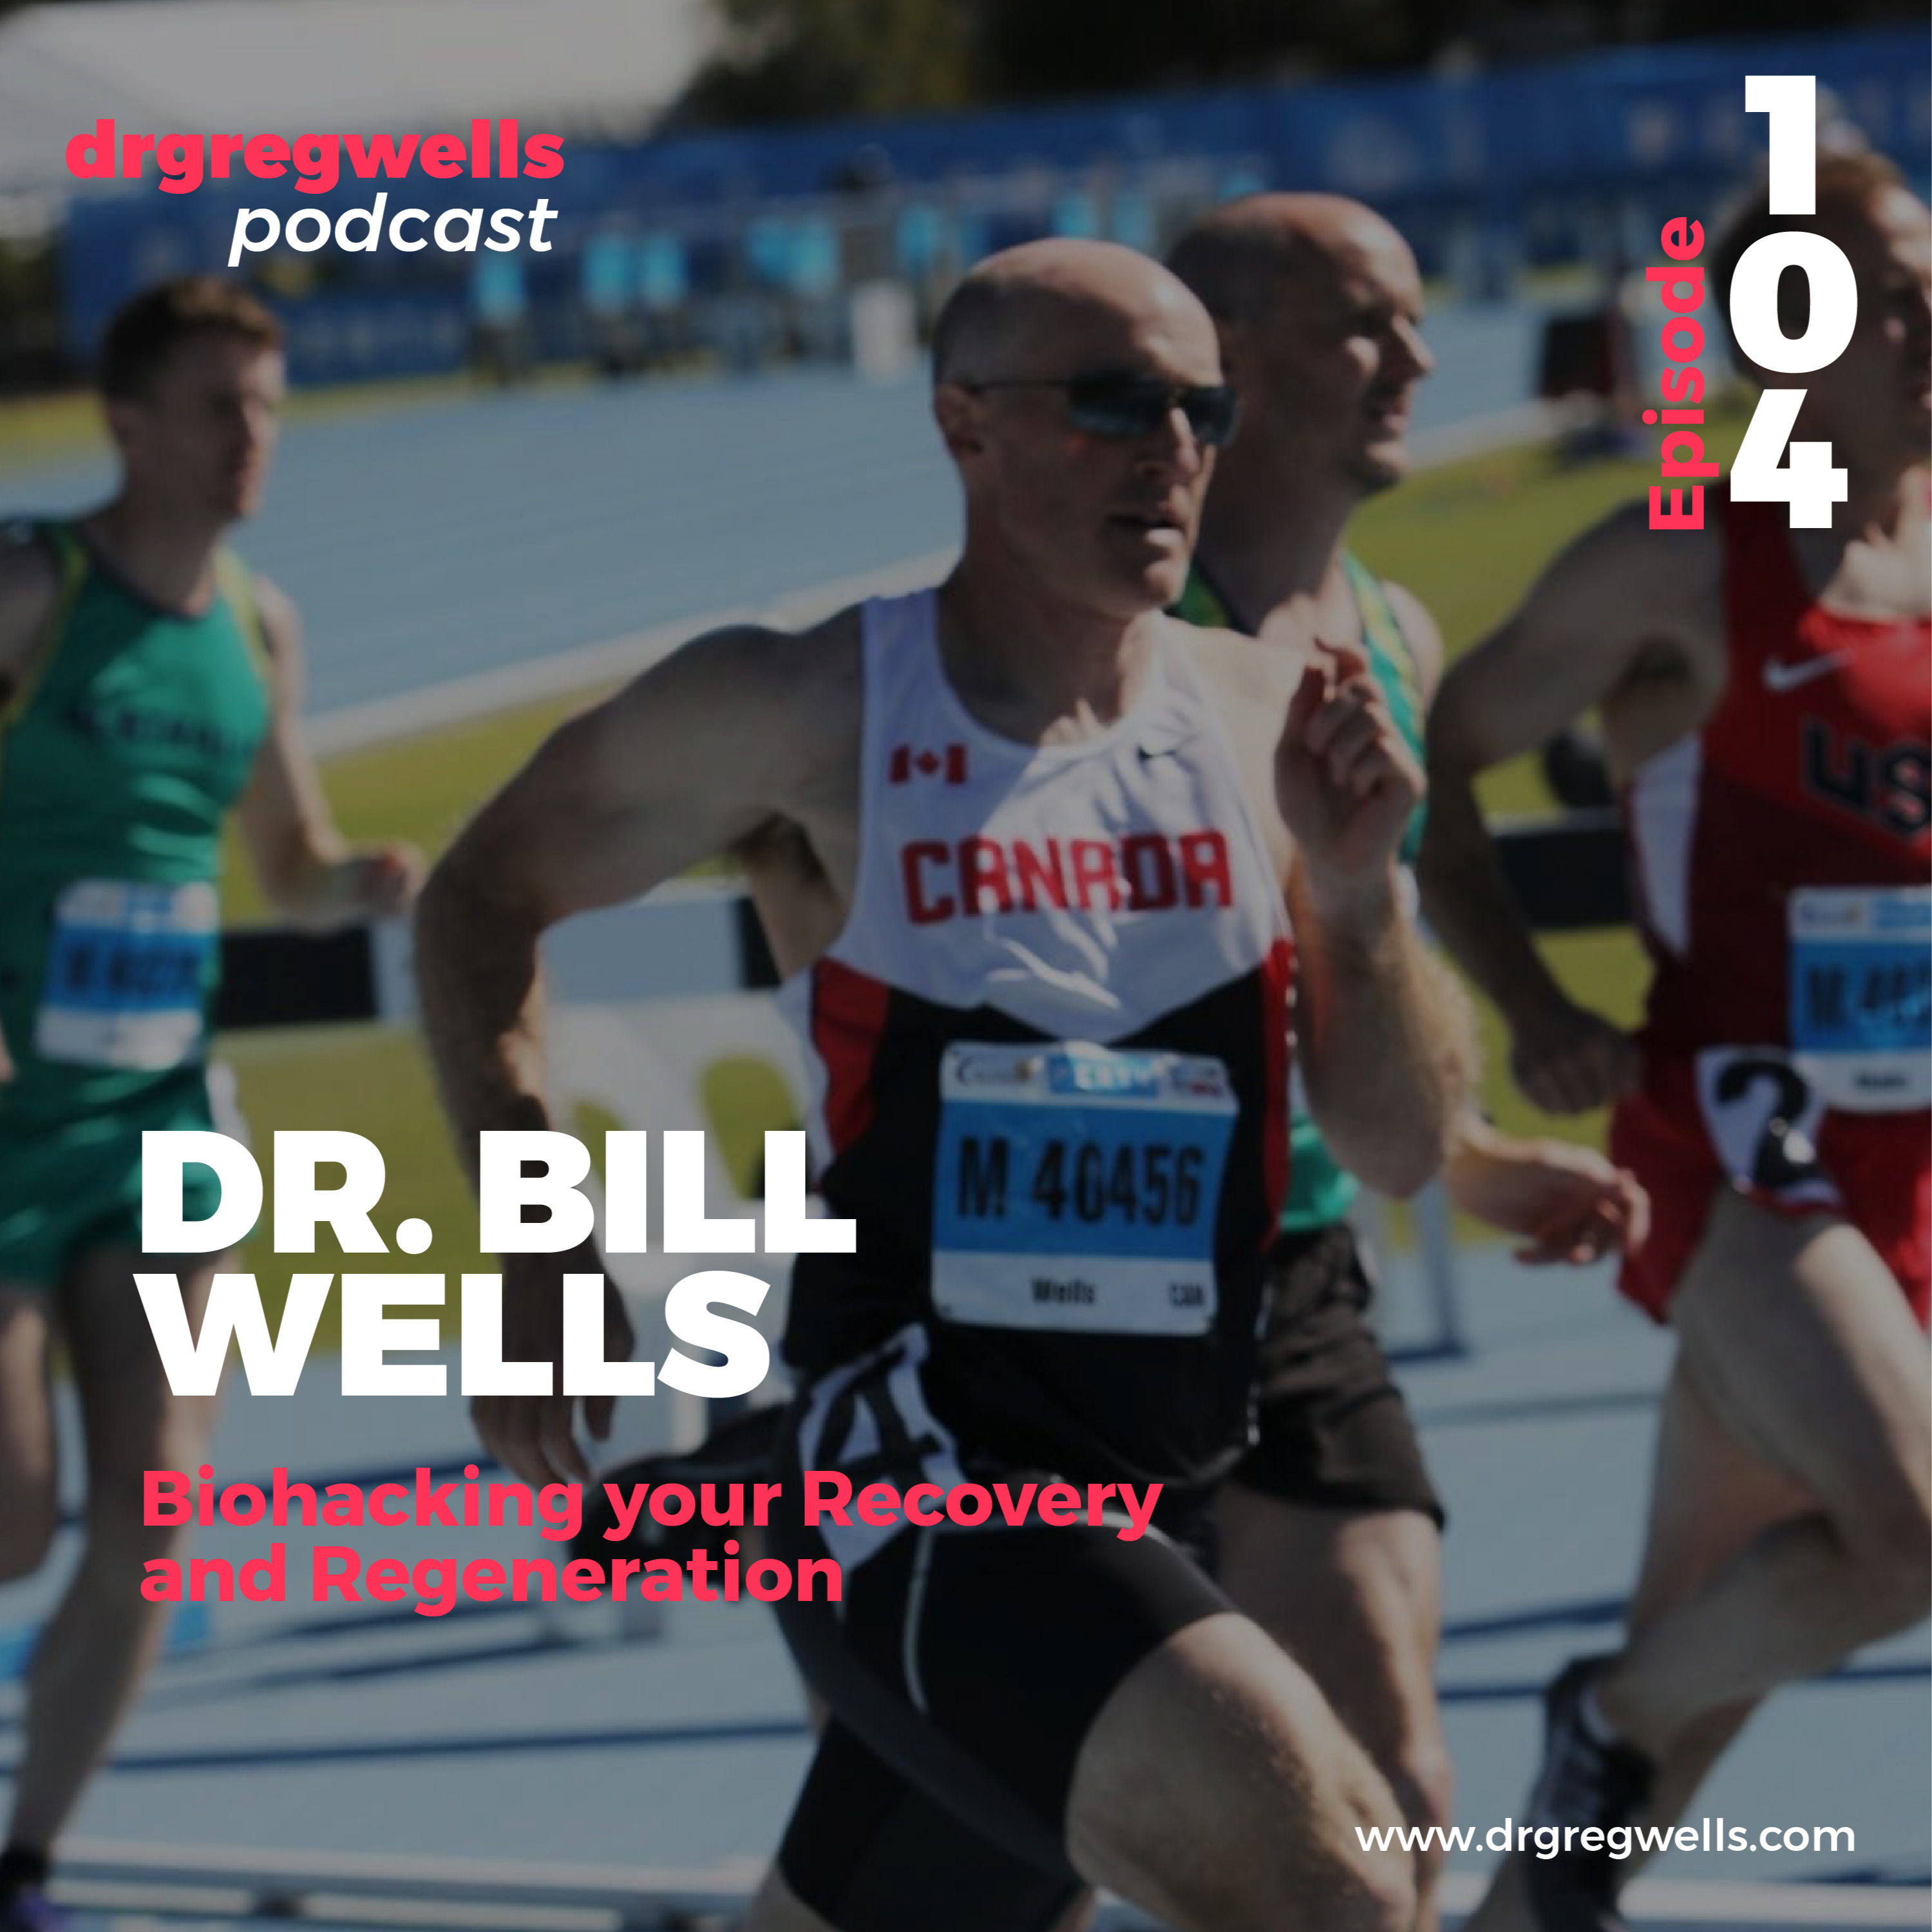 #104. Dr. Bill Wells on Biohacking your recovery and regeneration